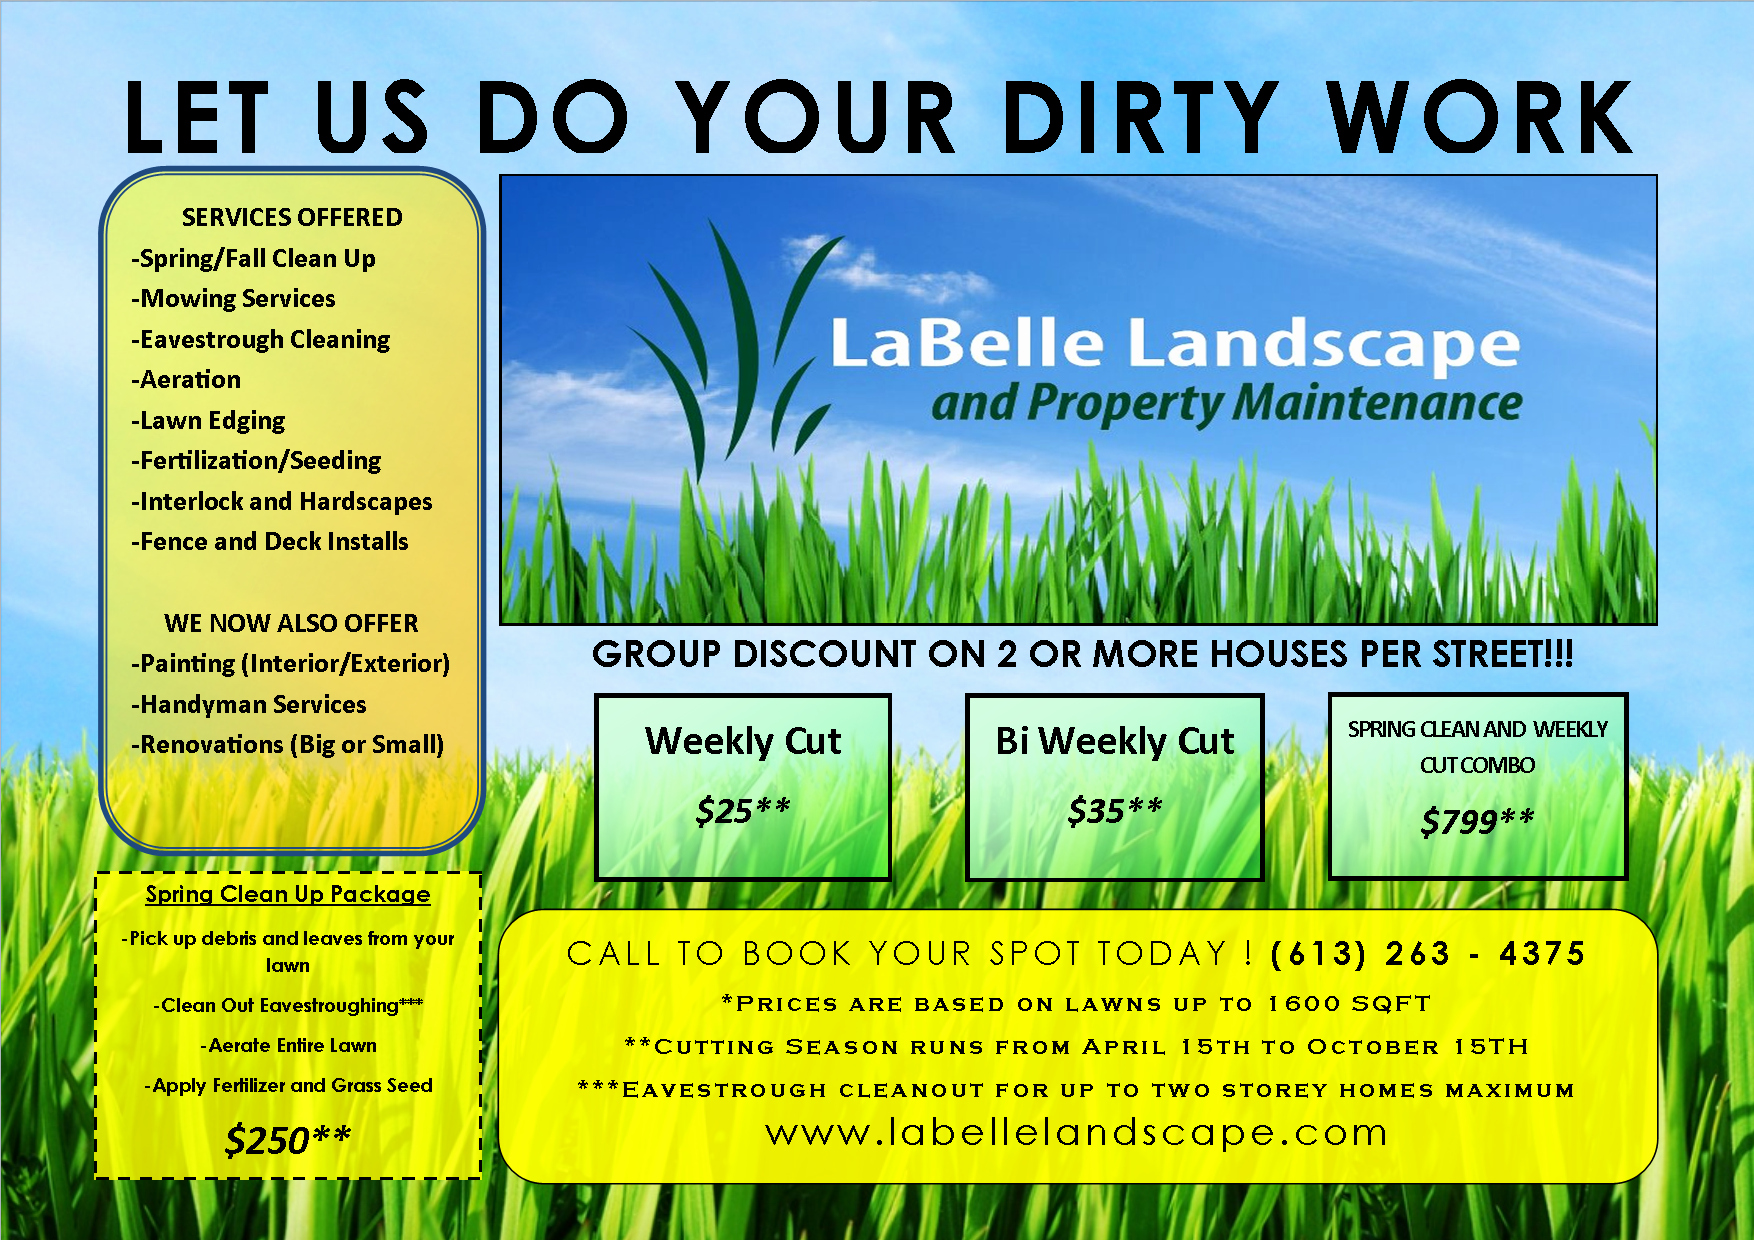 Lawn Mowing Service Flyer Fresh Lawn Care Flyer Free Template Flyer Templates